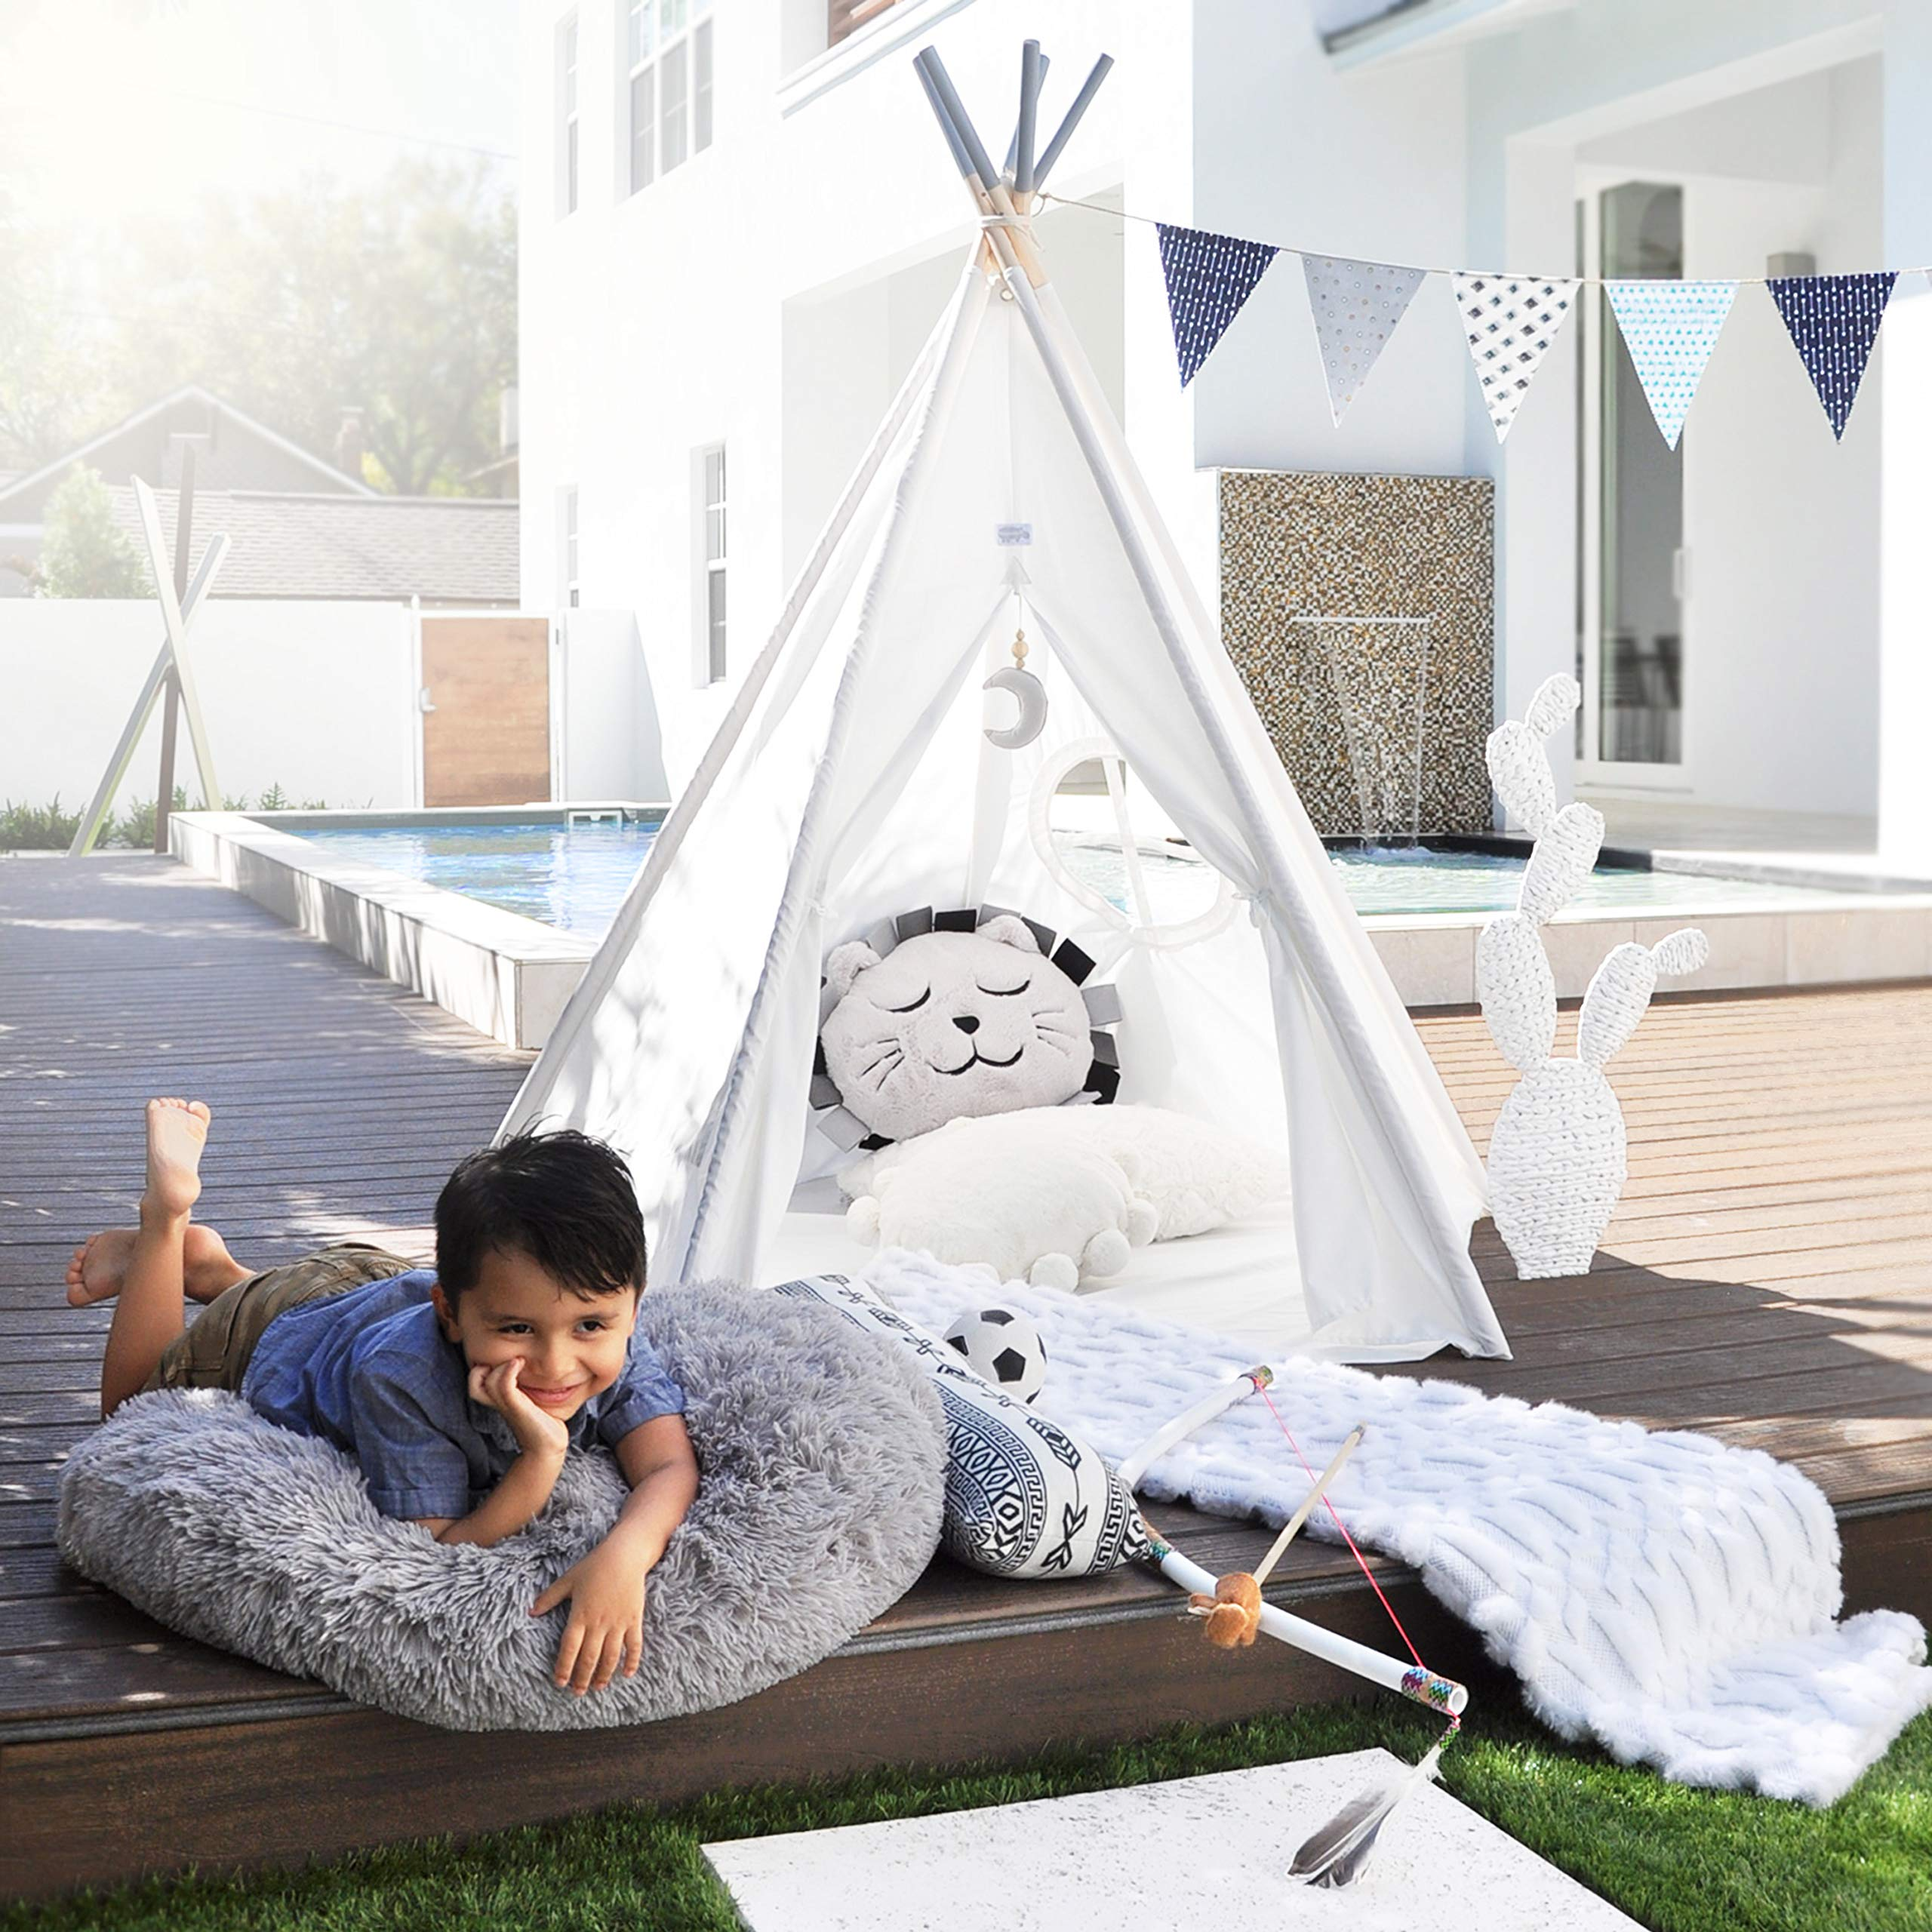 Hippococo Teepee Tent for Kids: Large Sturdy Quality 5 Poles Play House Foldable Indoor Outdoor Tipi Tents, True White Canvas, Floor Mat, Grey Moon Accessory, Family Fun Crafts eBook Included (Grey) by Hippococo (Image #2)